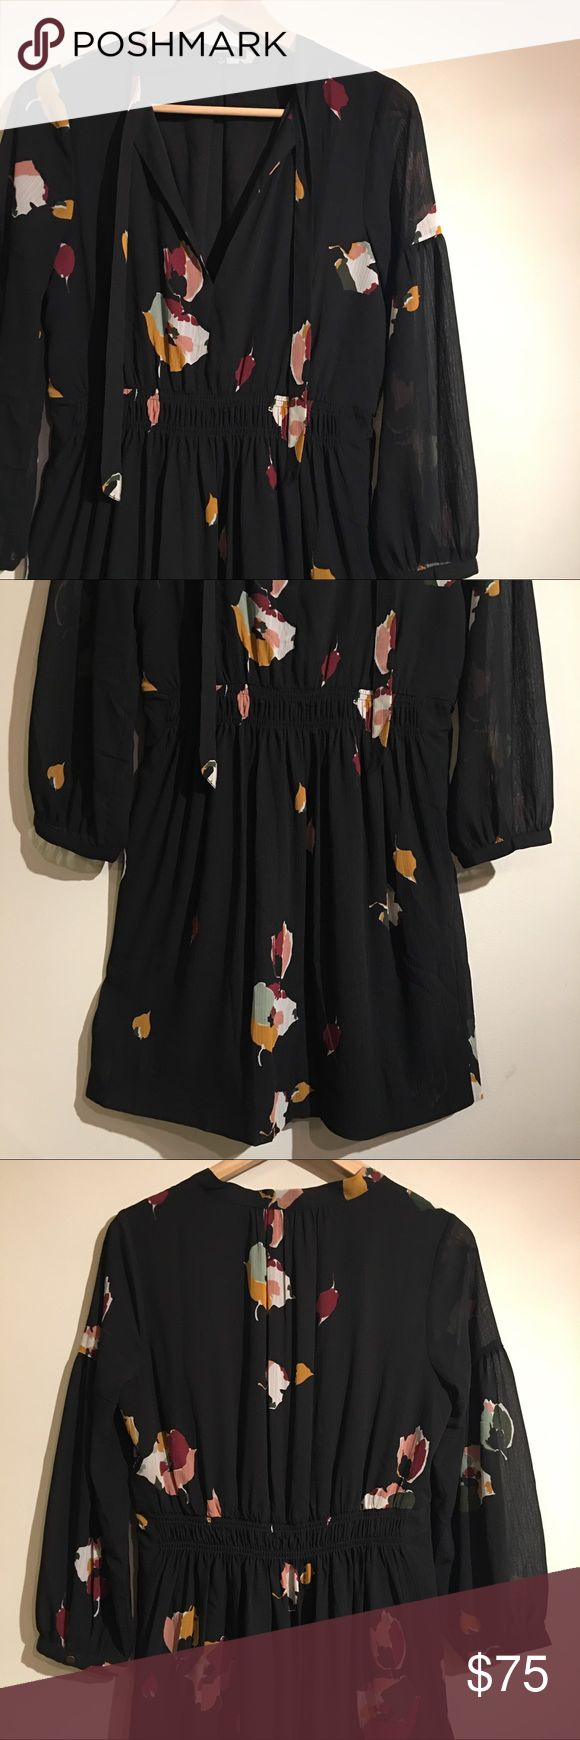 """MW Painted Floral Tie-Neck Dress Like new floral dress from Madewell in a size 2. Soft blouson sleeves, delicate stocking, and easy ties at the neck that you can keep loosely tied or hanging free altogether. Lined & waisted. Falls about 34 7/8"""" from highest point of bodice. Great all-occasion dress! No trades. Madewell Dresses"""